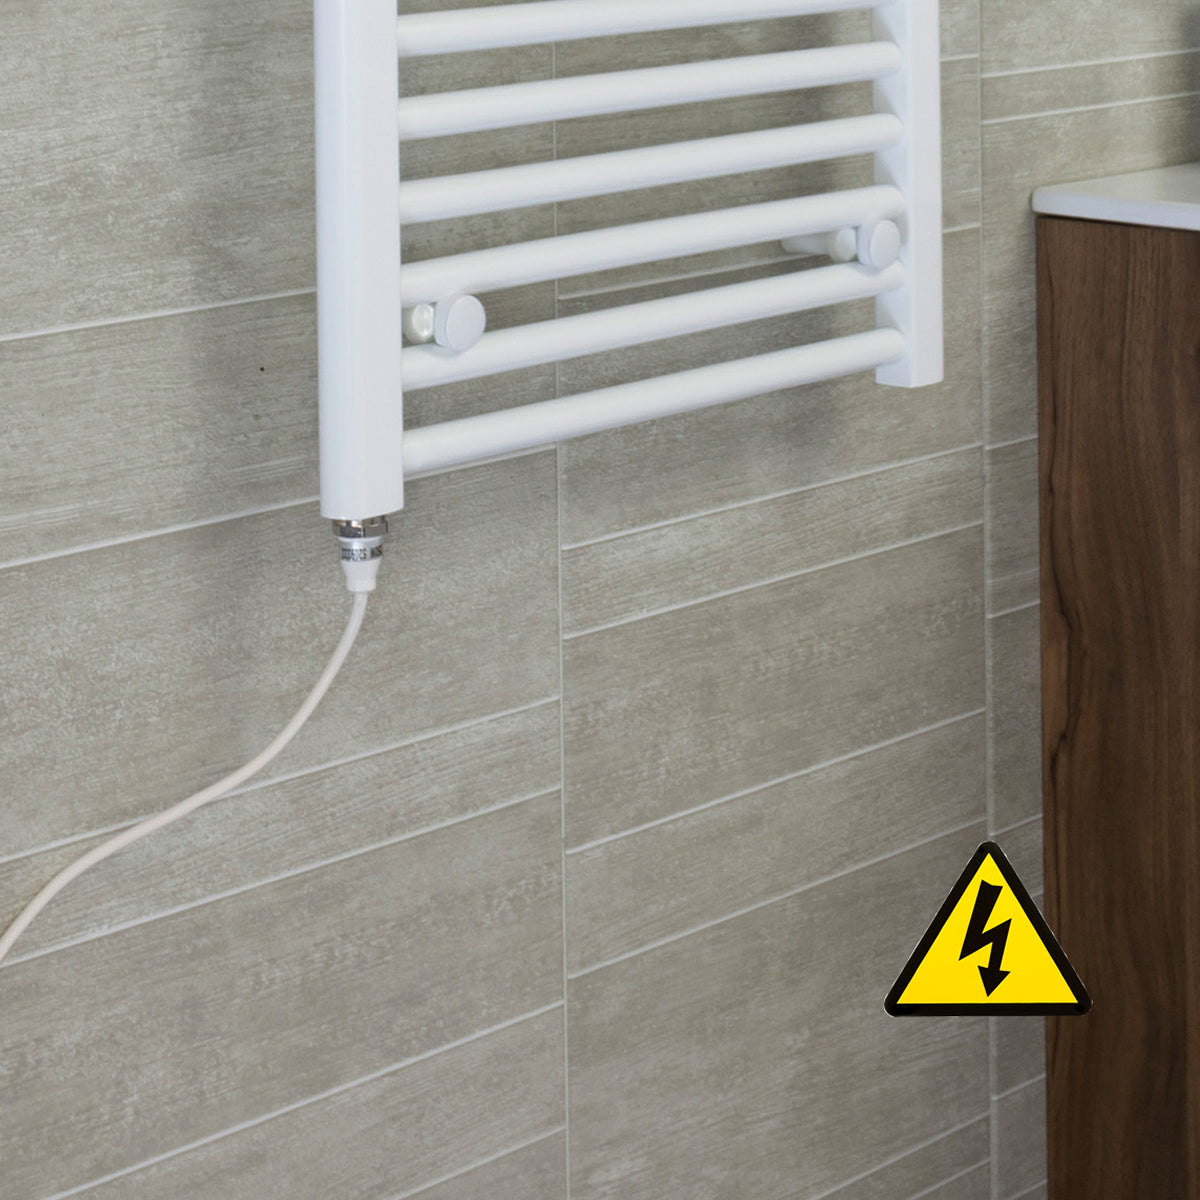 650mm Wide 400mm High Flat WHITE Pre-Filled Electric Heated Towel Rail Radiator HTR,Single Heat Element